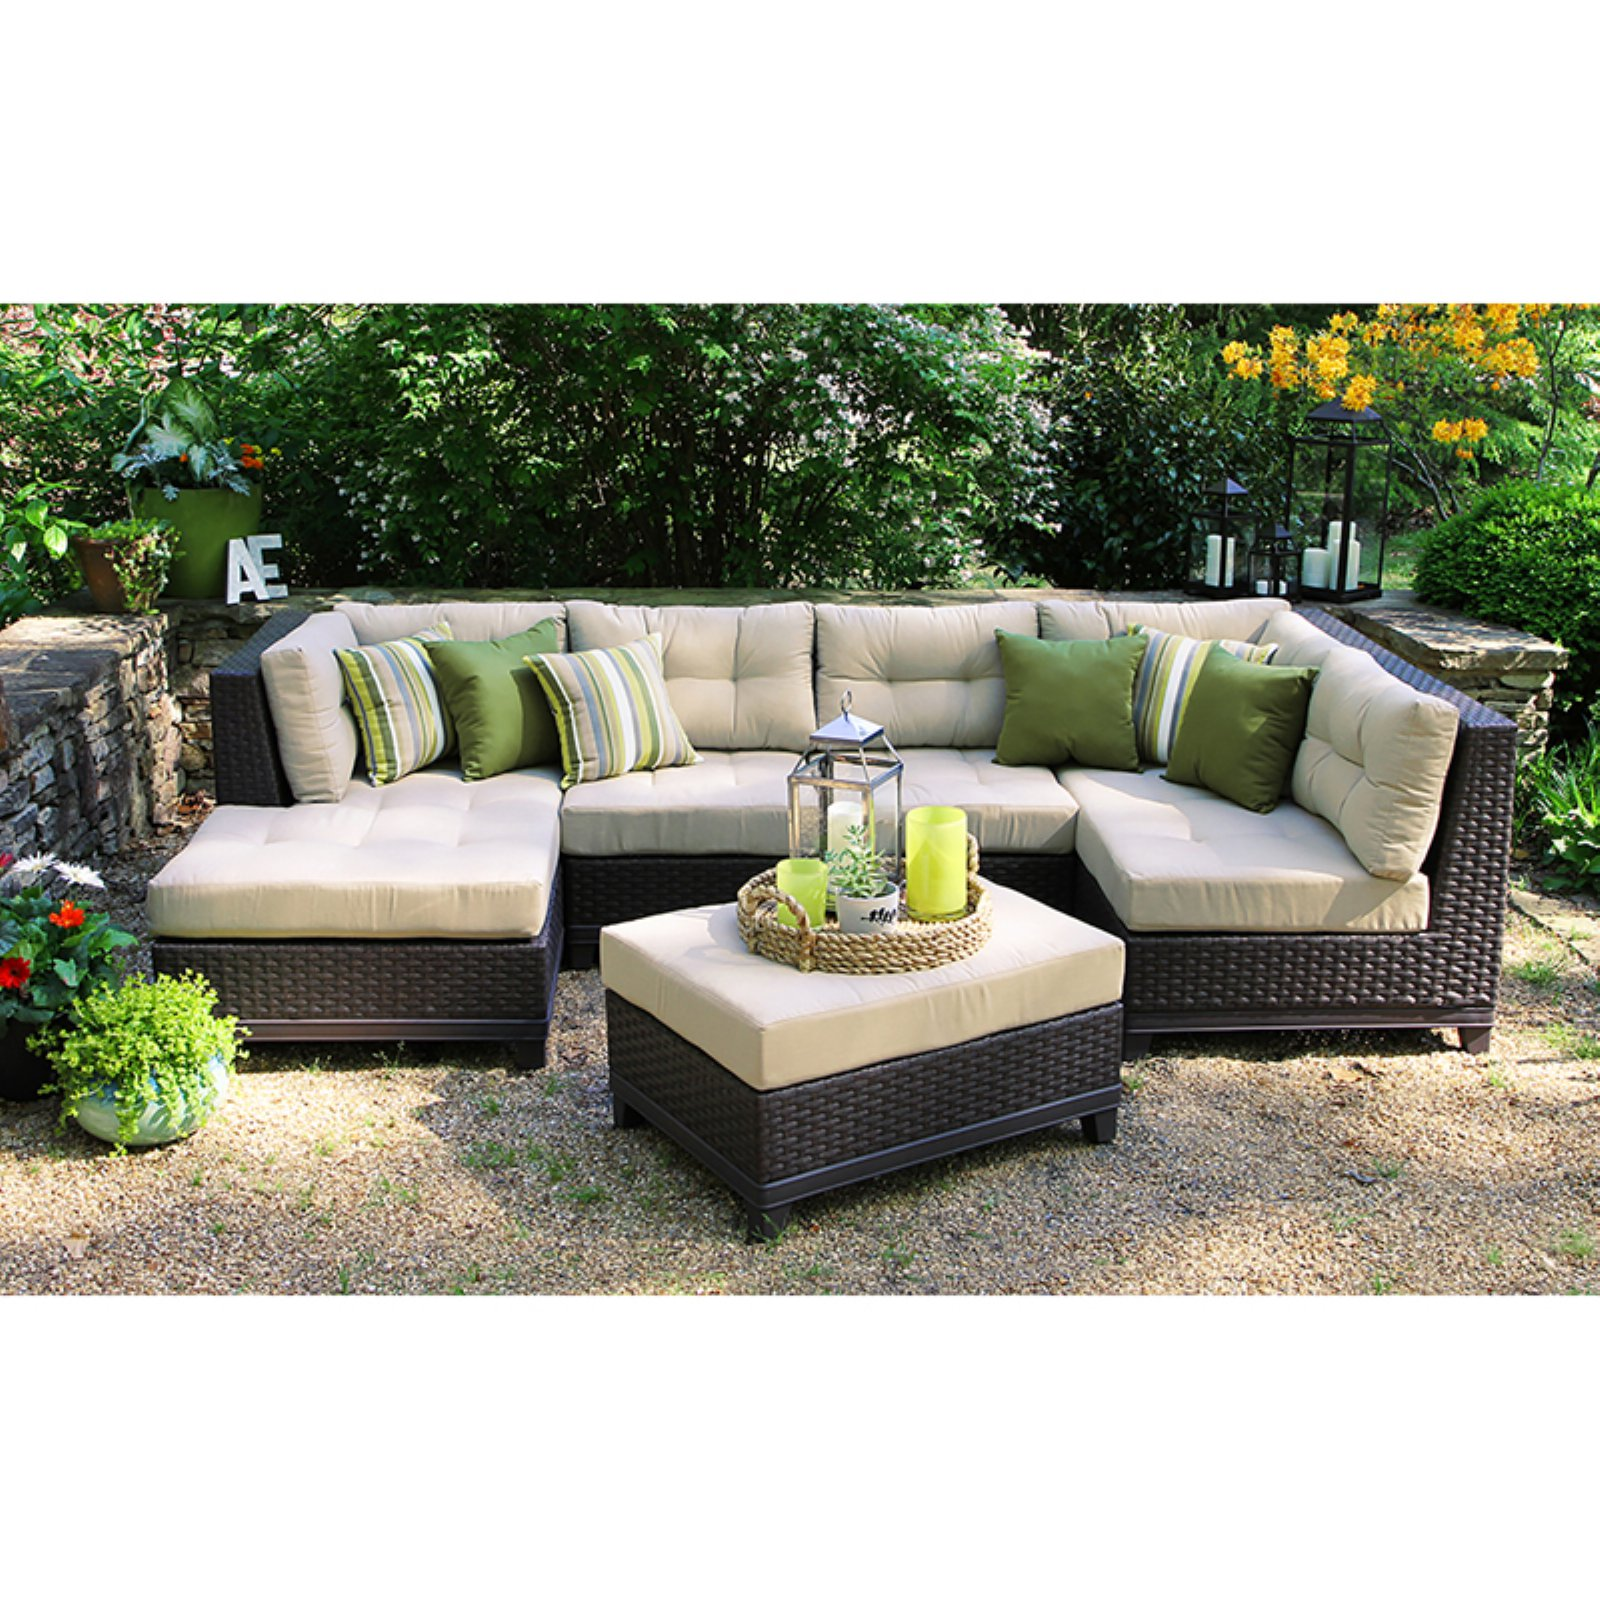 AE Outdoor Hillborough 4 Piece Sectional Conversation Set